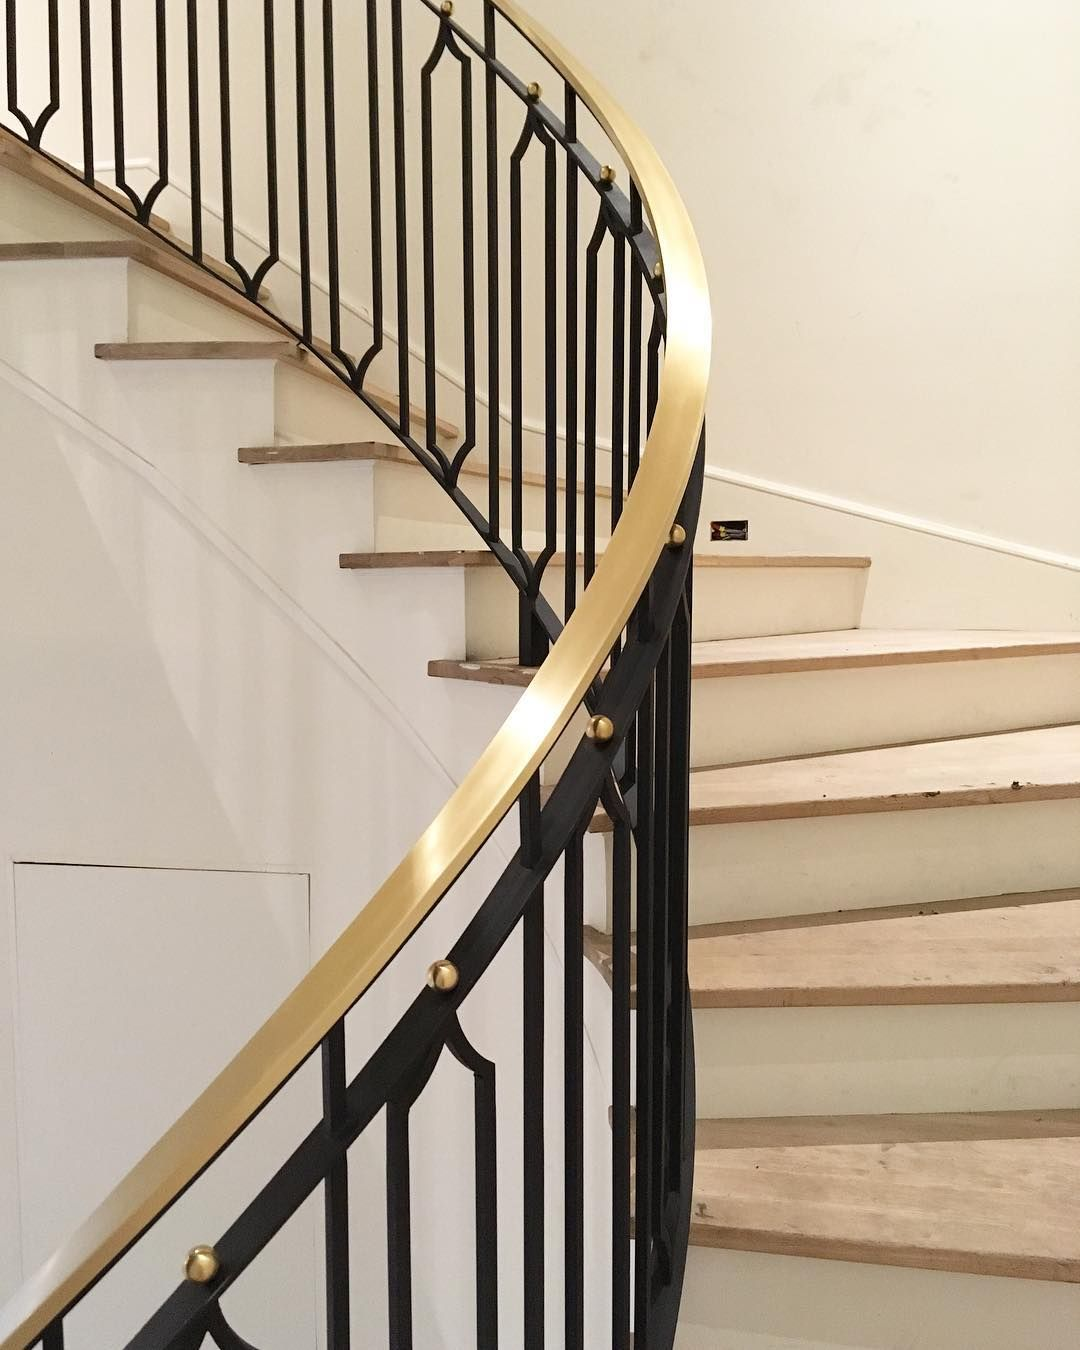 Design By Jenkins Interiors Curved Brass And Iron Handrail   Unique Handrails For Stairs   Residential Staircase   Hand Rail   Simple   Inside   Interior